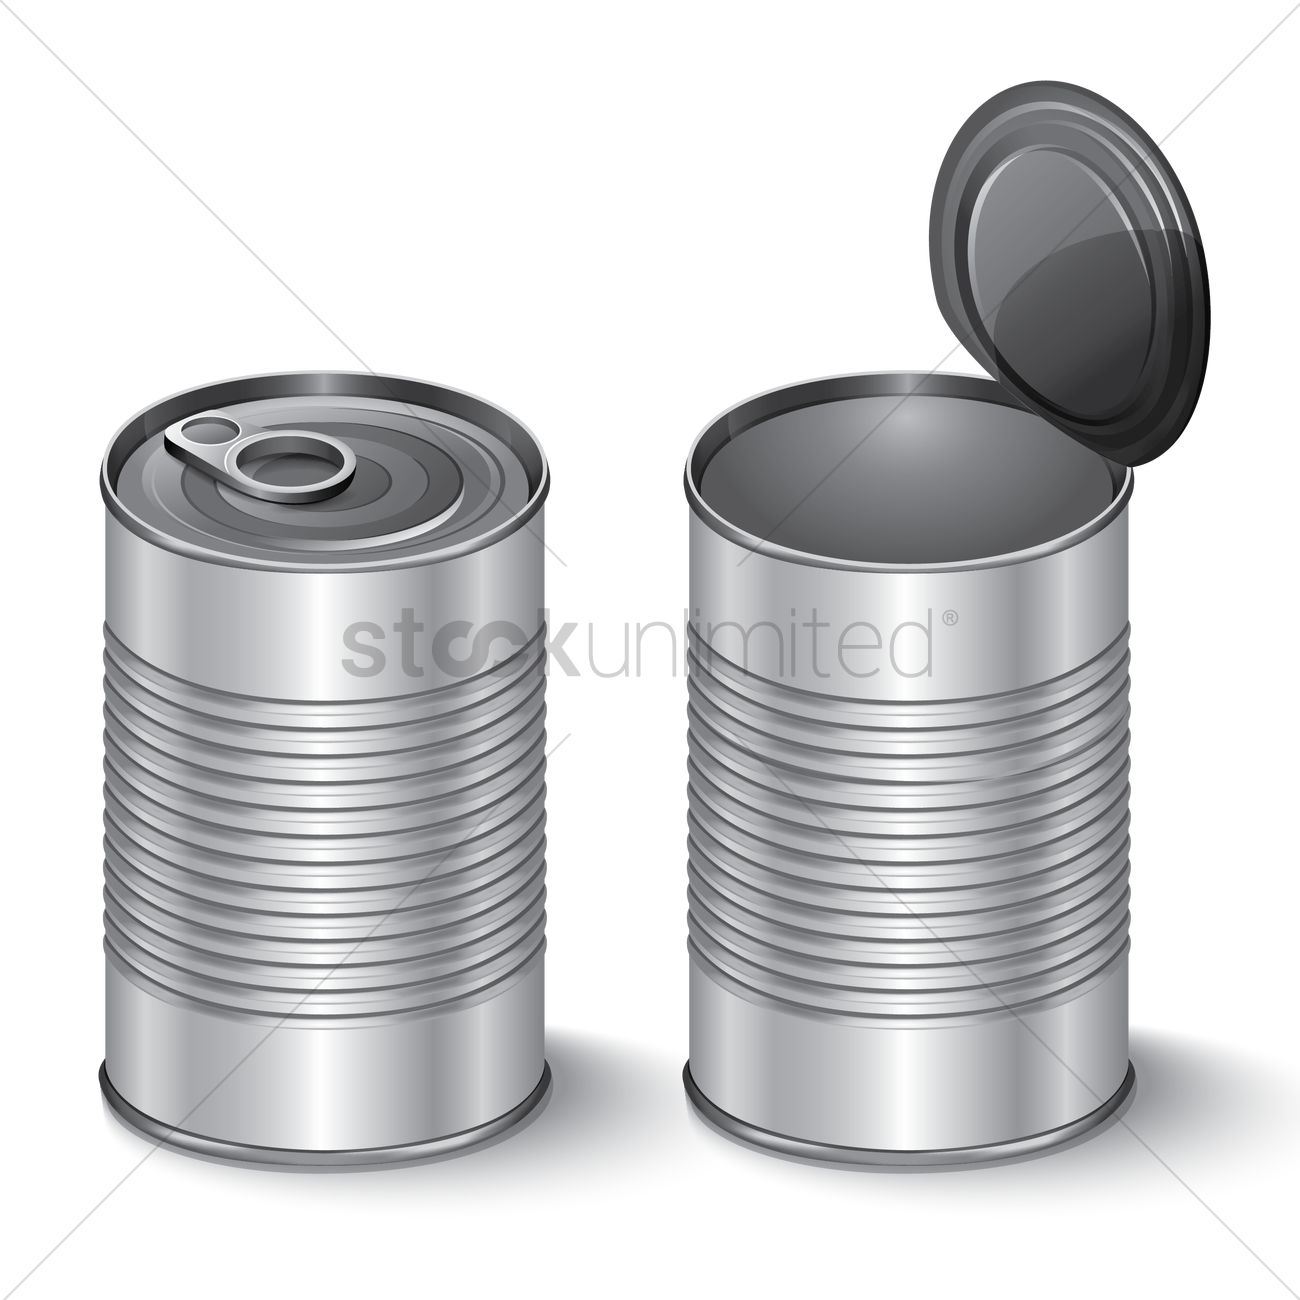 Tin cans Vector Image.